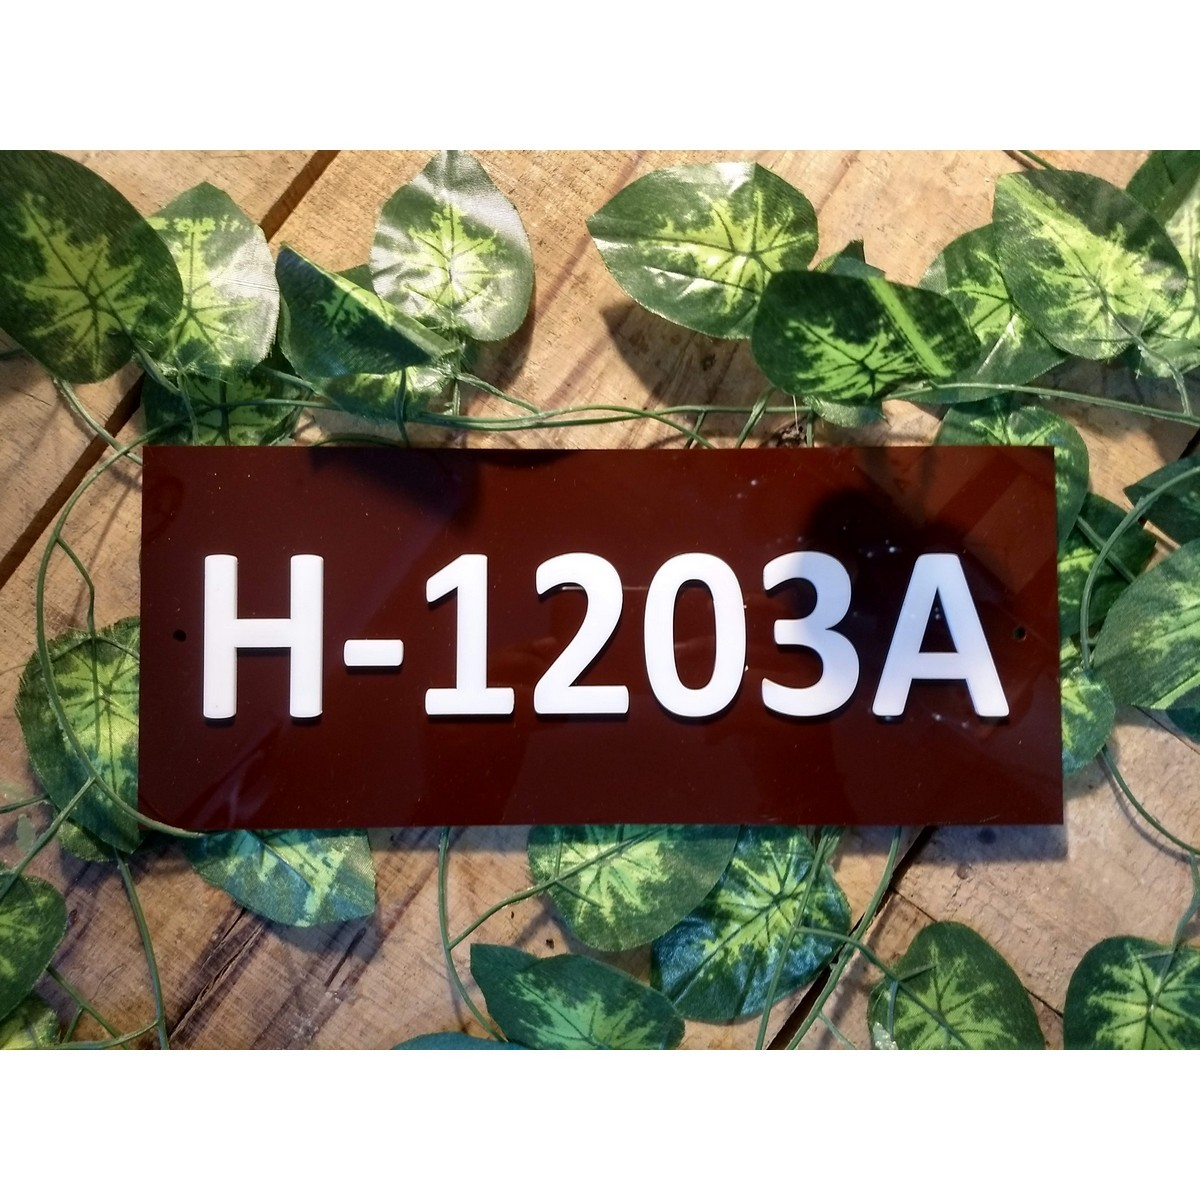 Home Number plate